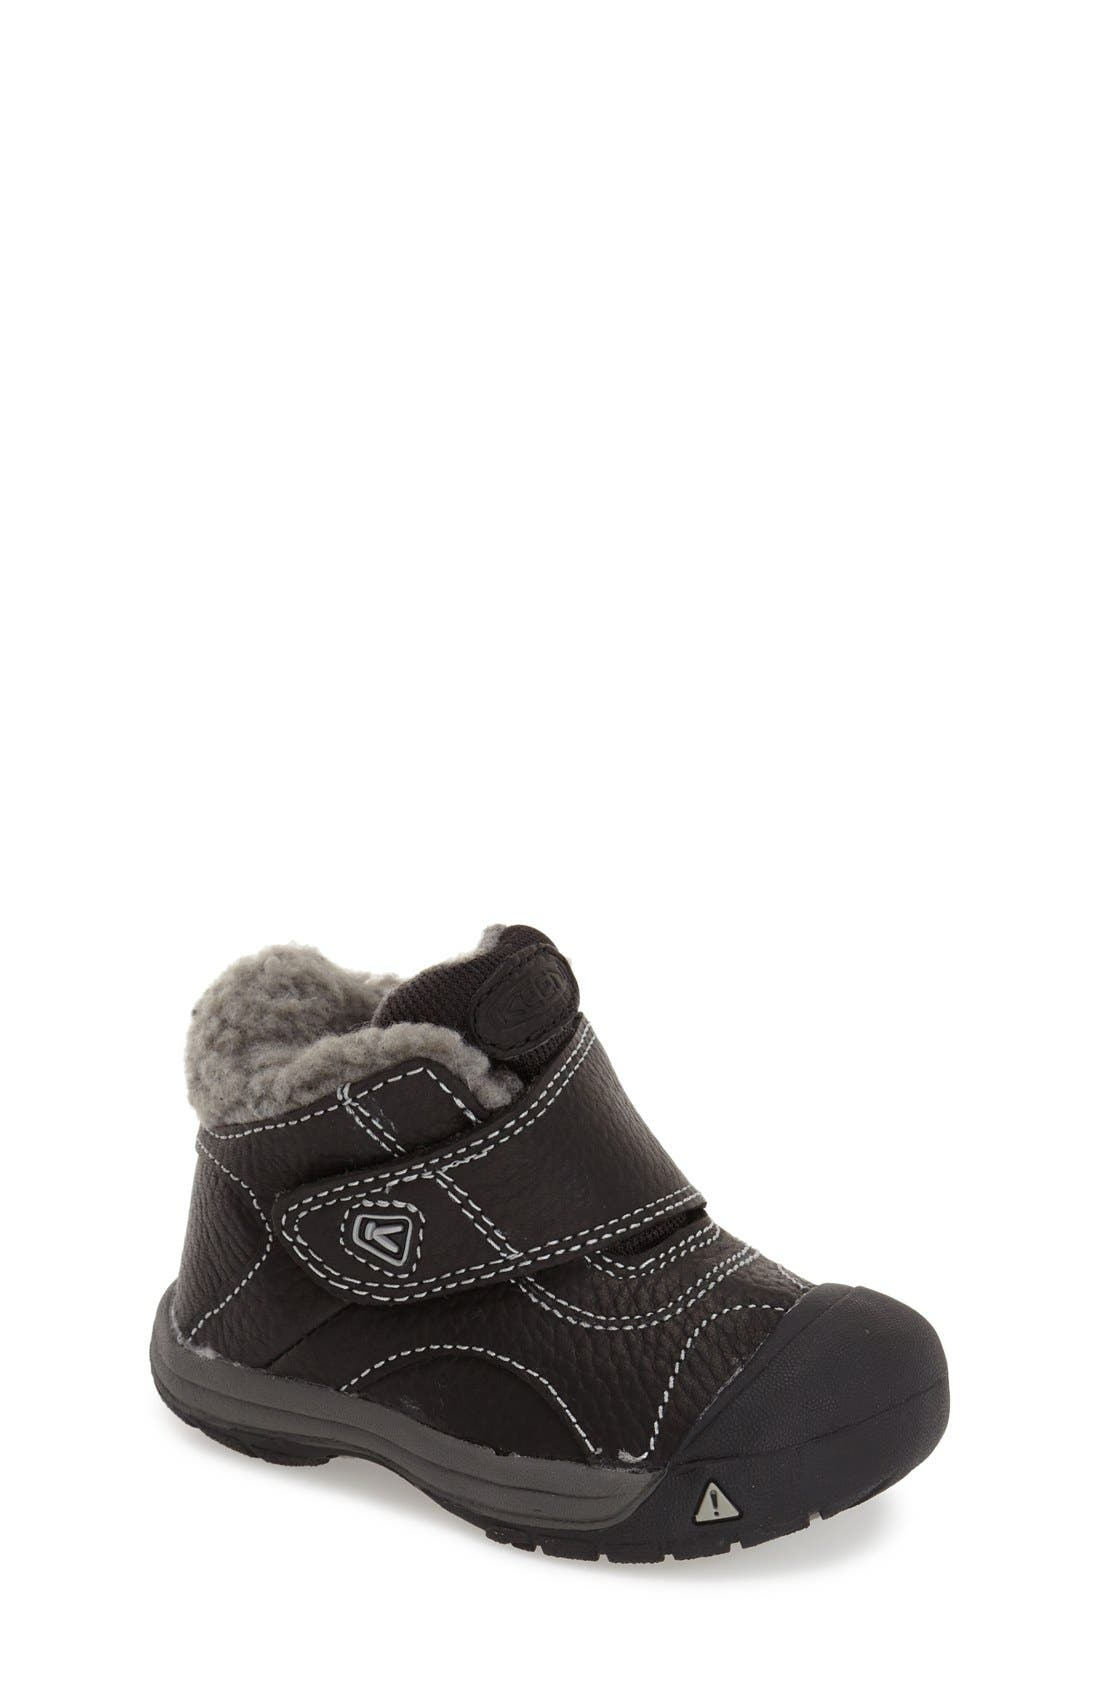 Main Image - Keen 'Kootenay' Boot (Baby, Walker, Toddler & Little Kid)